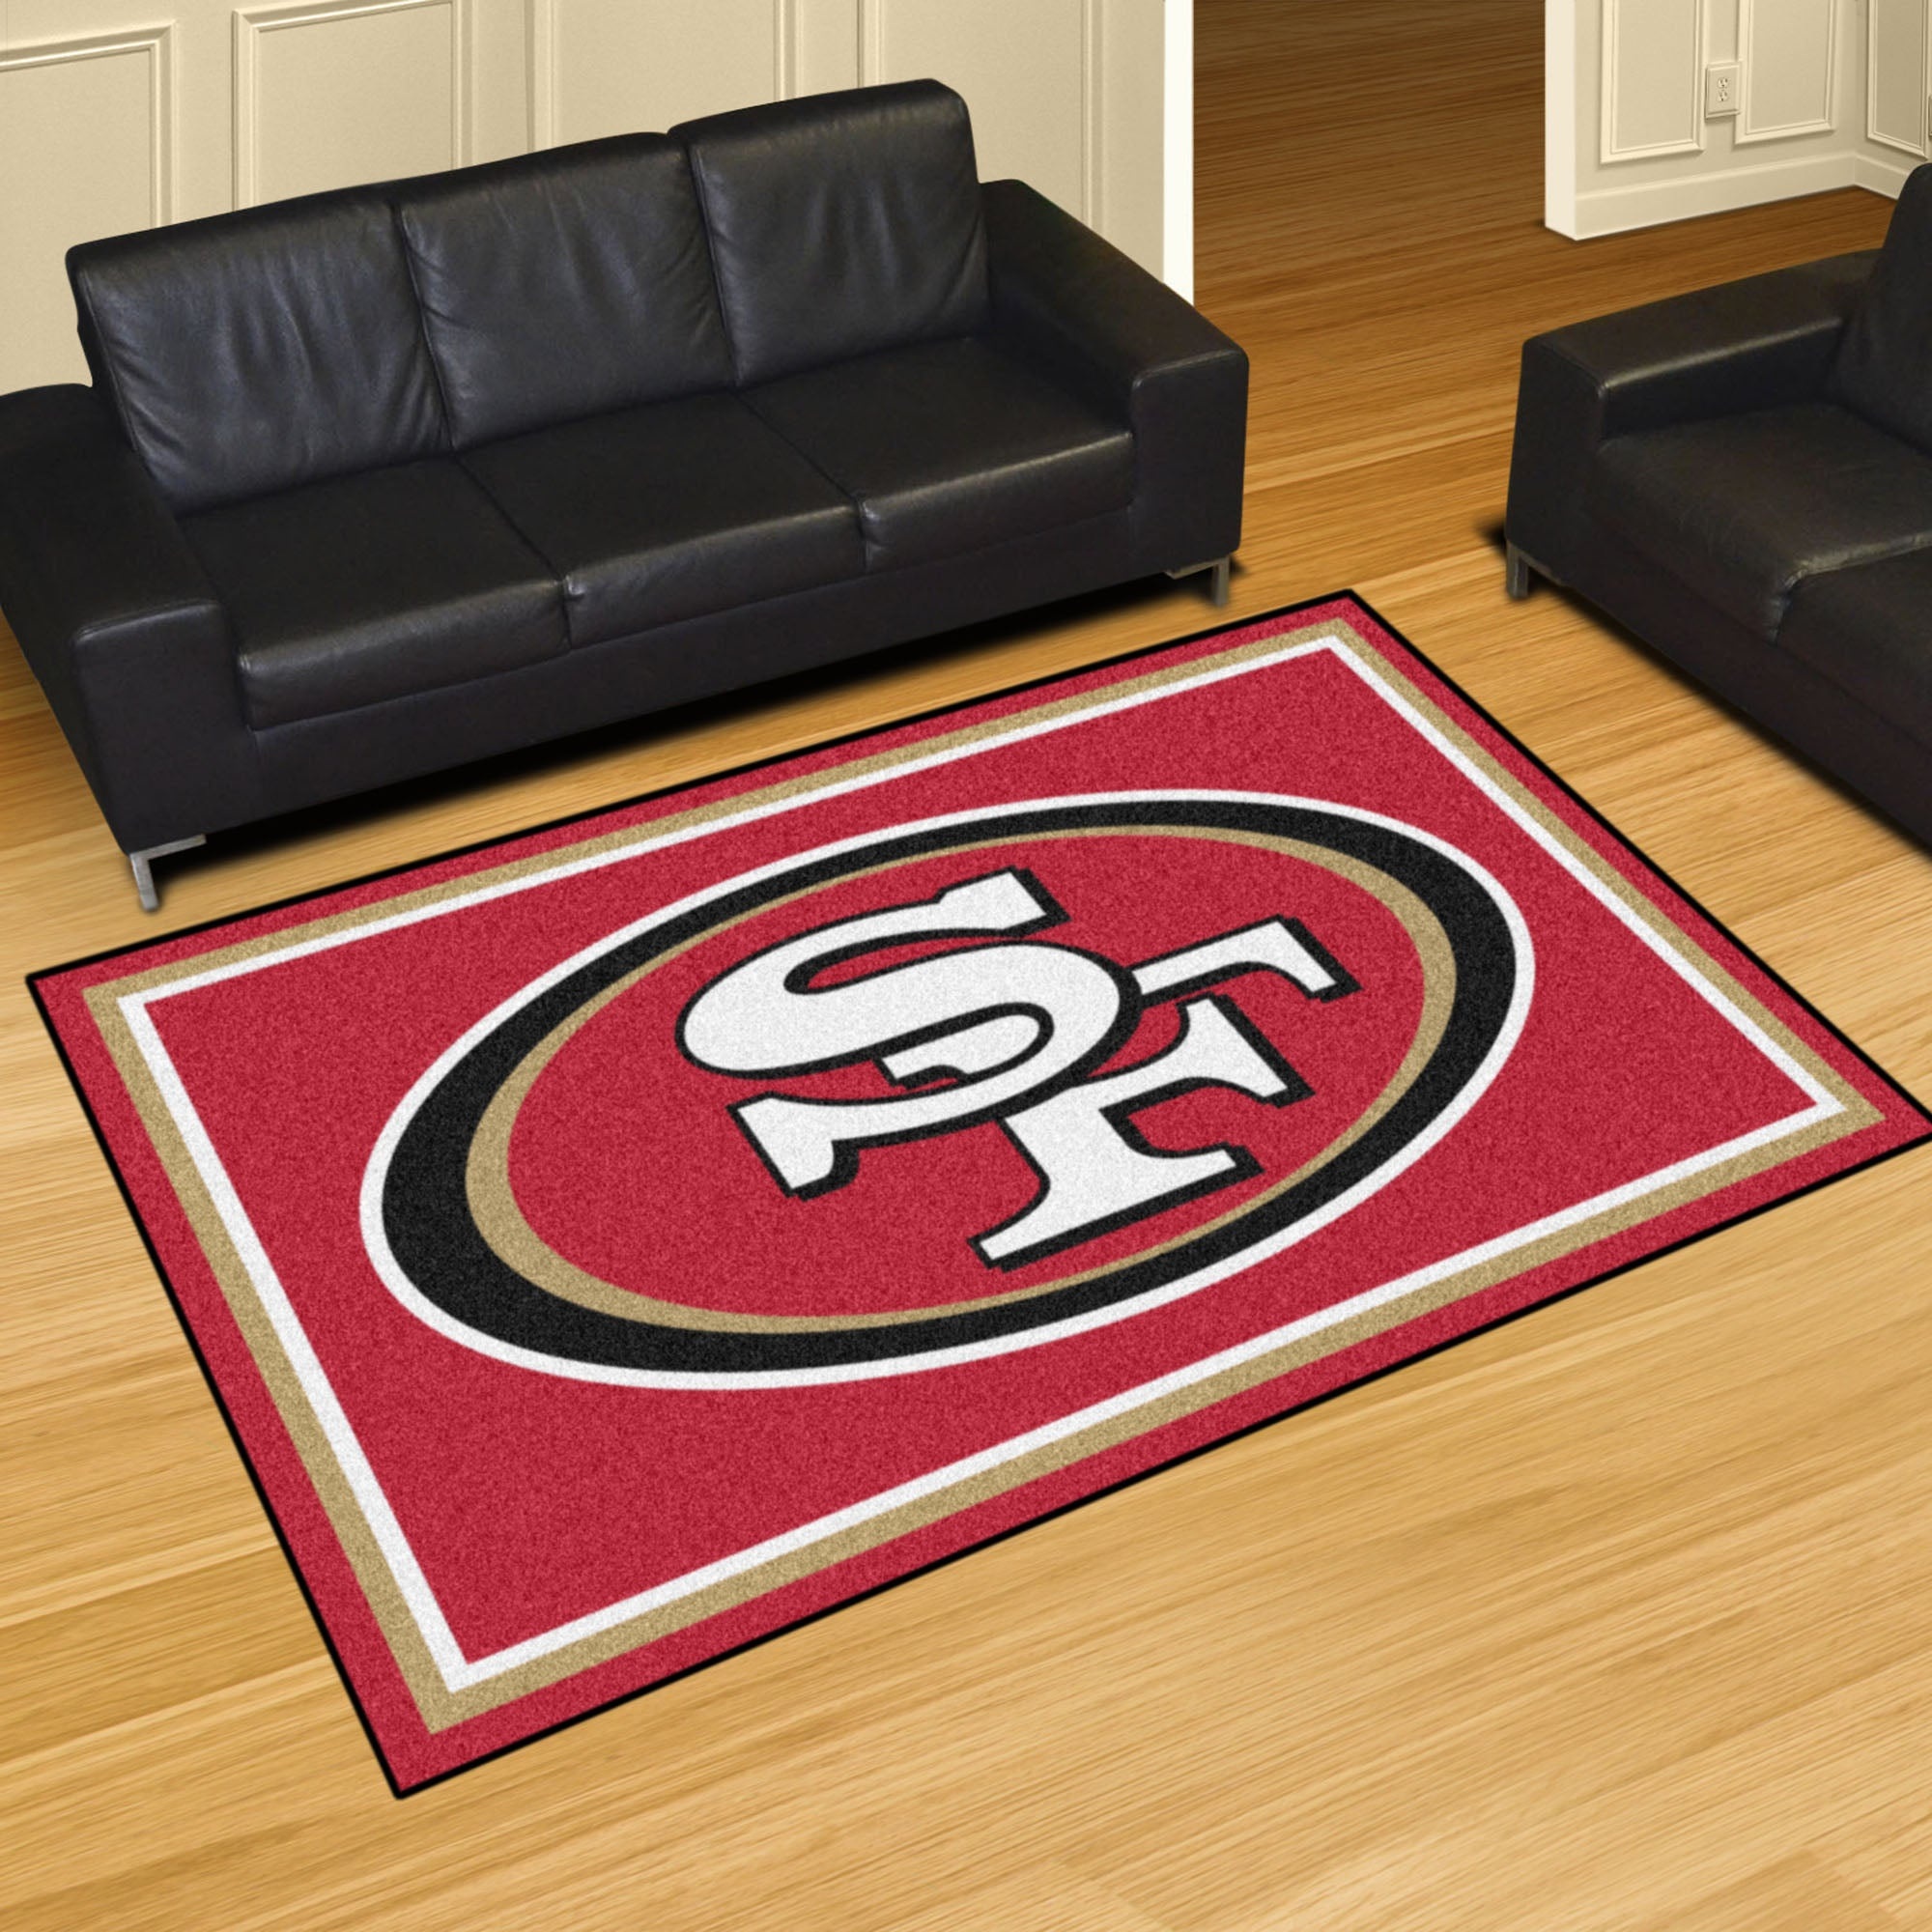 San Francisco 49ers Plush Rug  NFL Area Rug - Fan Rugs